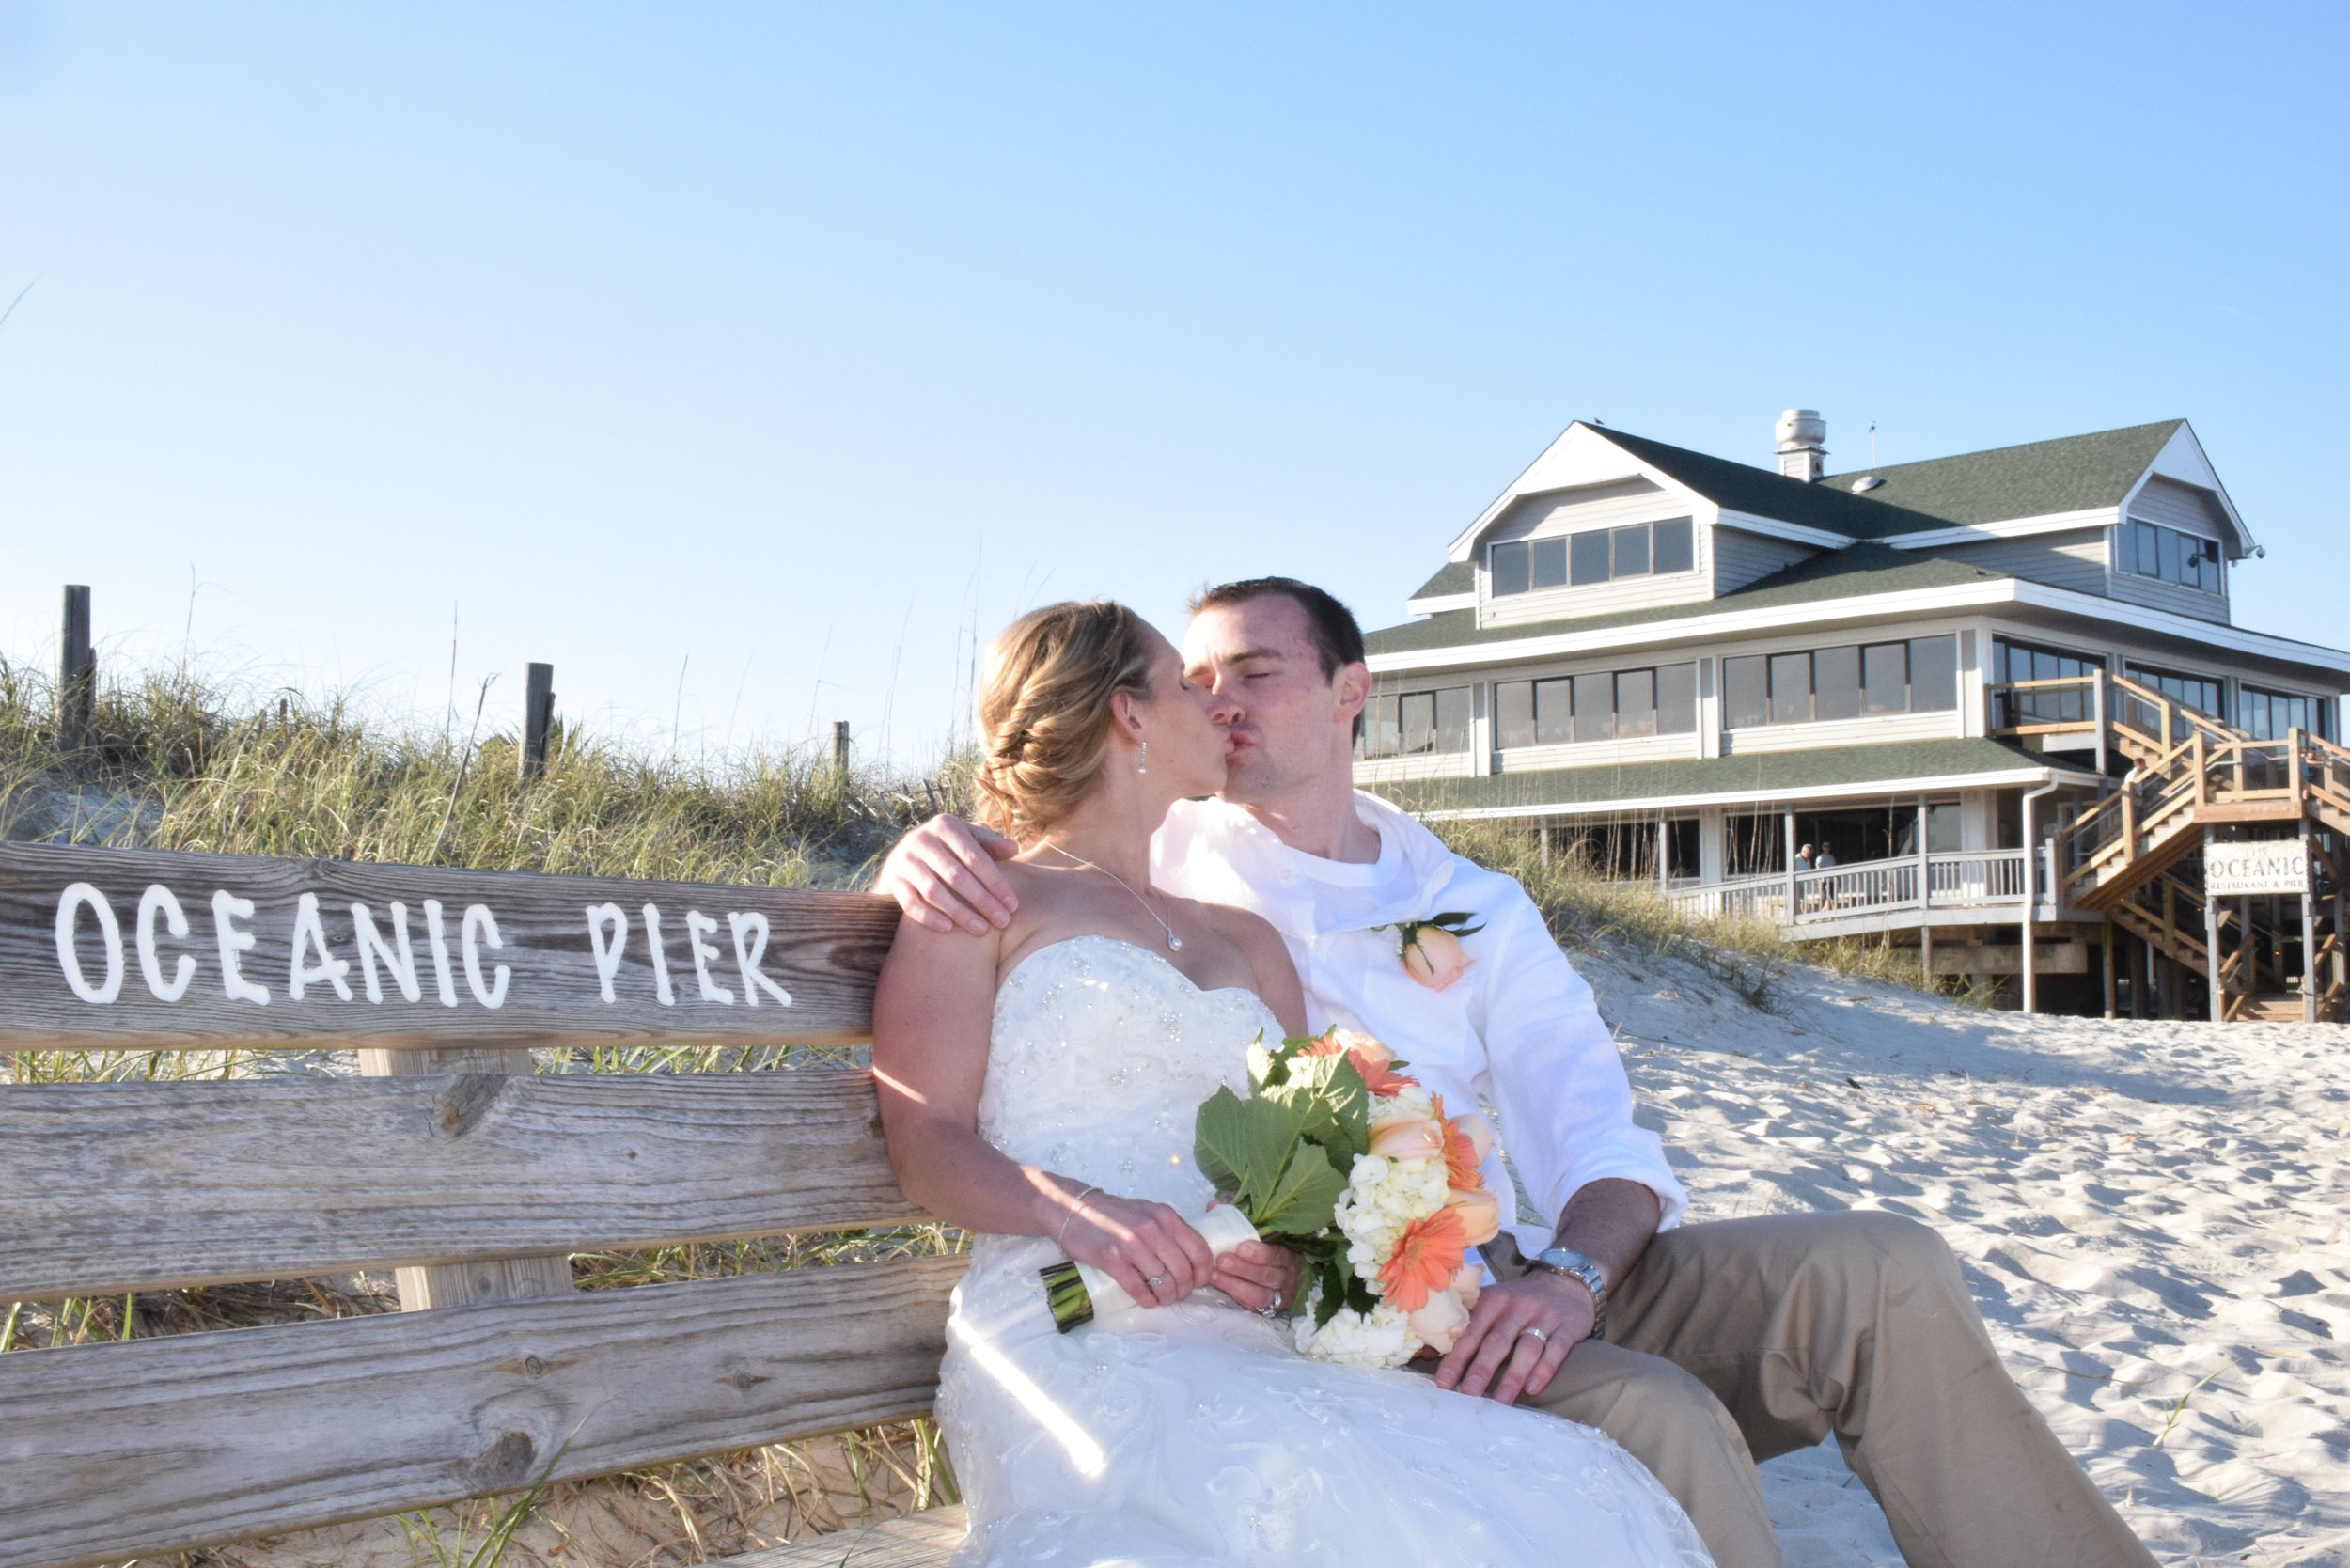 - Bride and groom sharing a kiss sitting on a bench near the Oceanic Pier with the Oceanic Restaurant in the background. Billy Beach Photography.